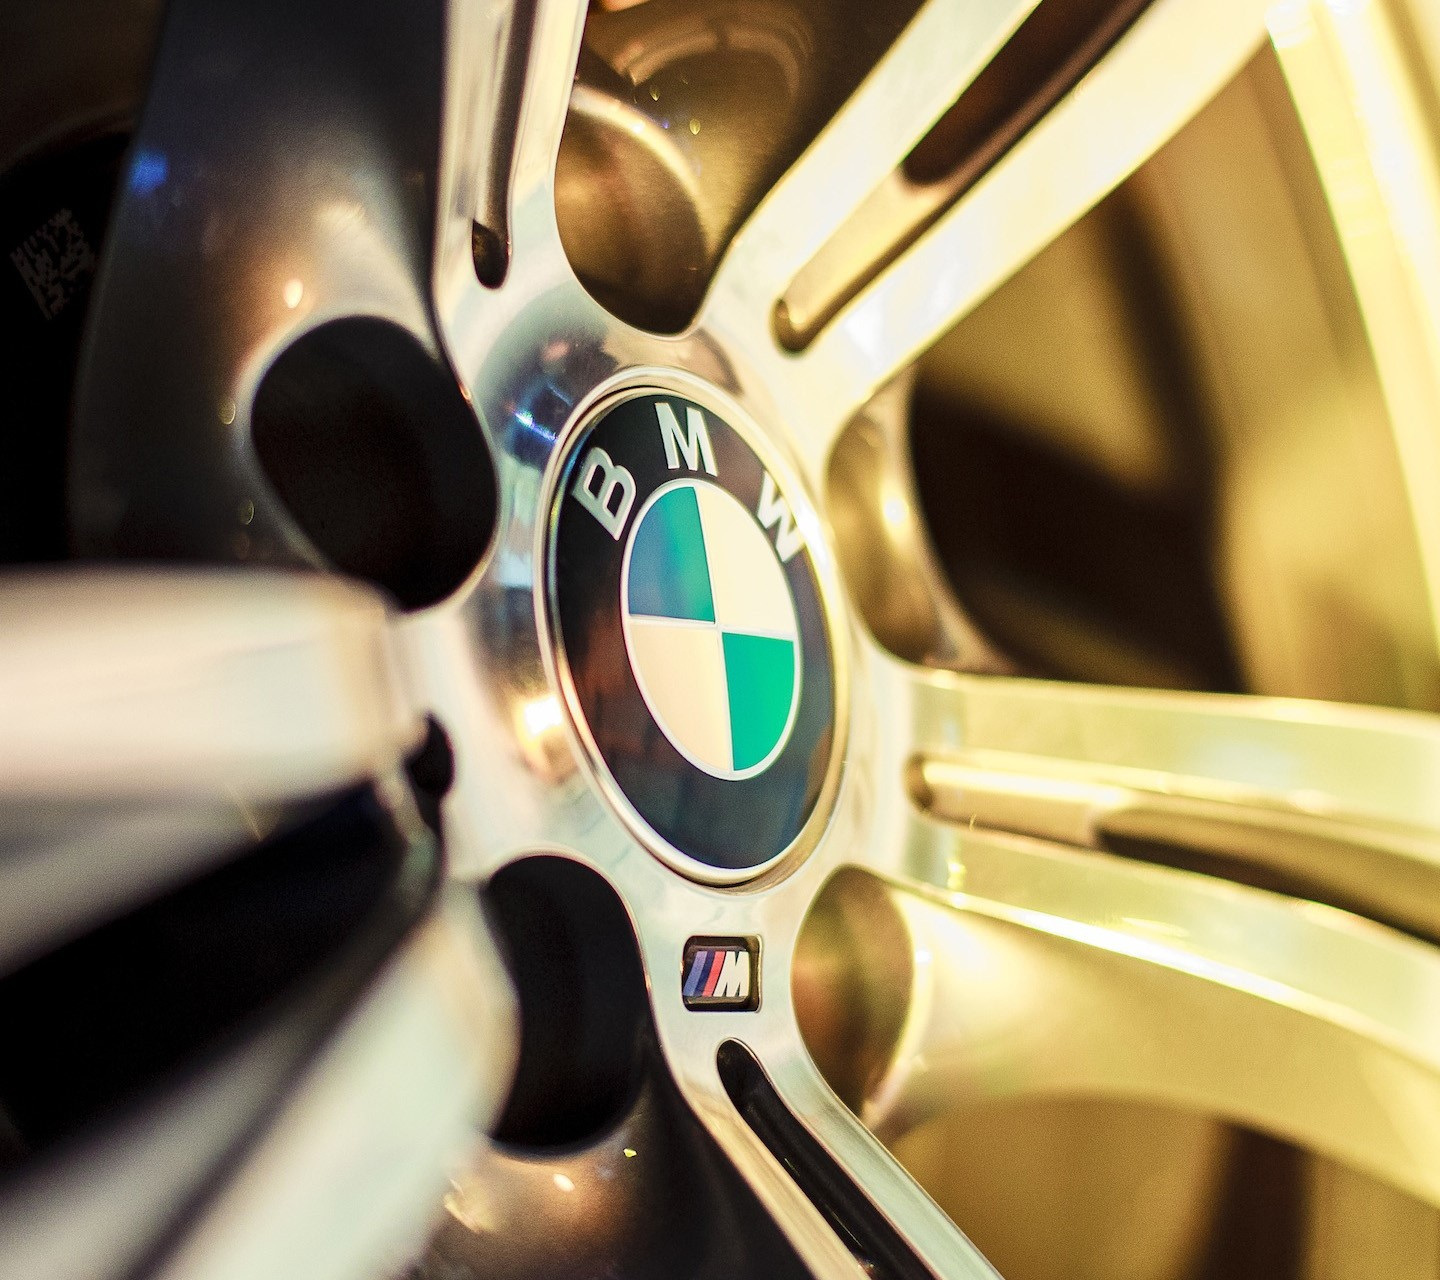 BMW M Wheel wallpaper 10058119